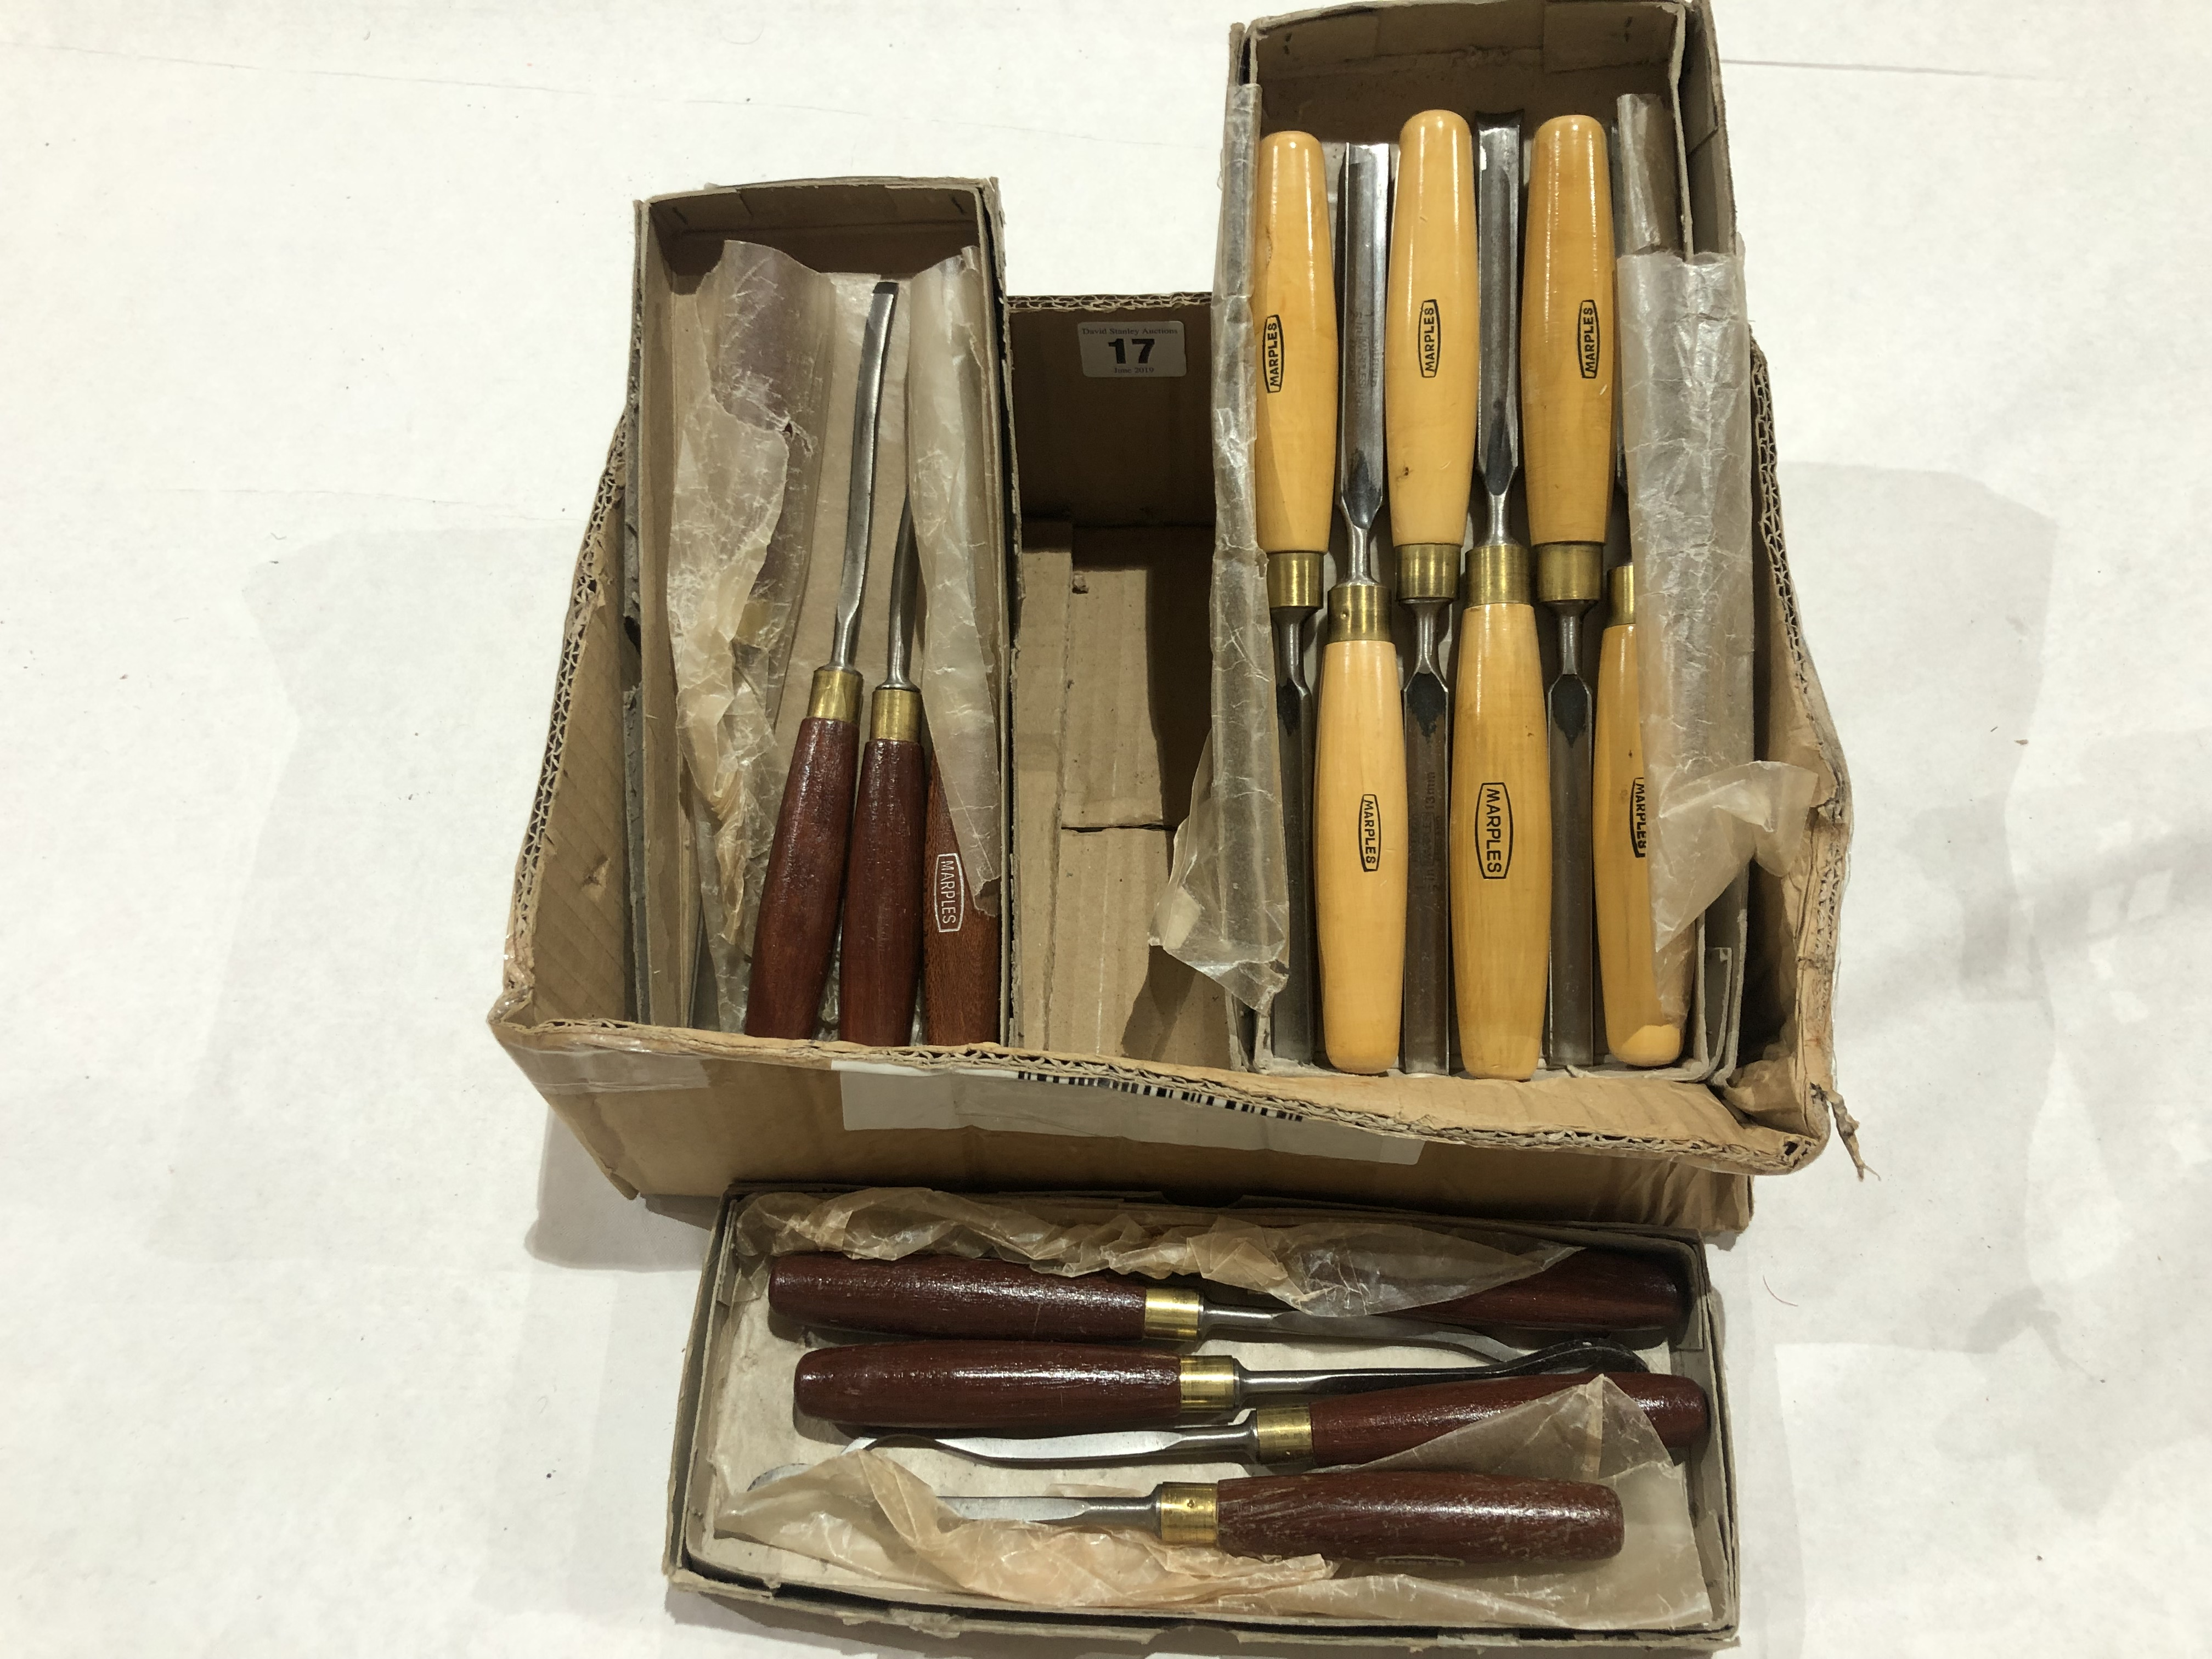 Lot 17 - Three boxes of MARPLES chisels and carving tools G++